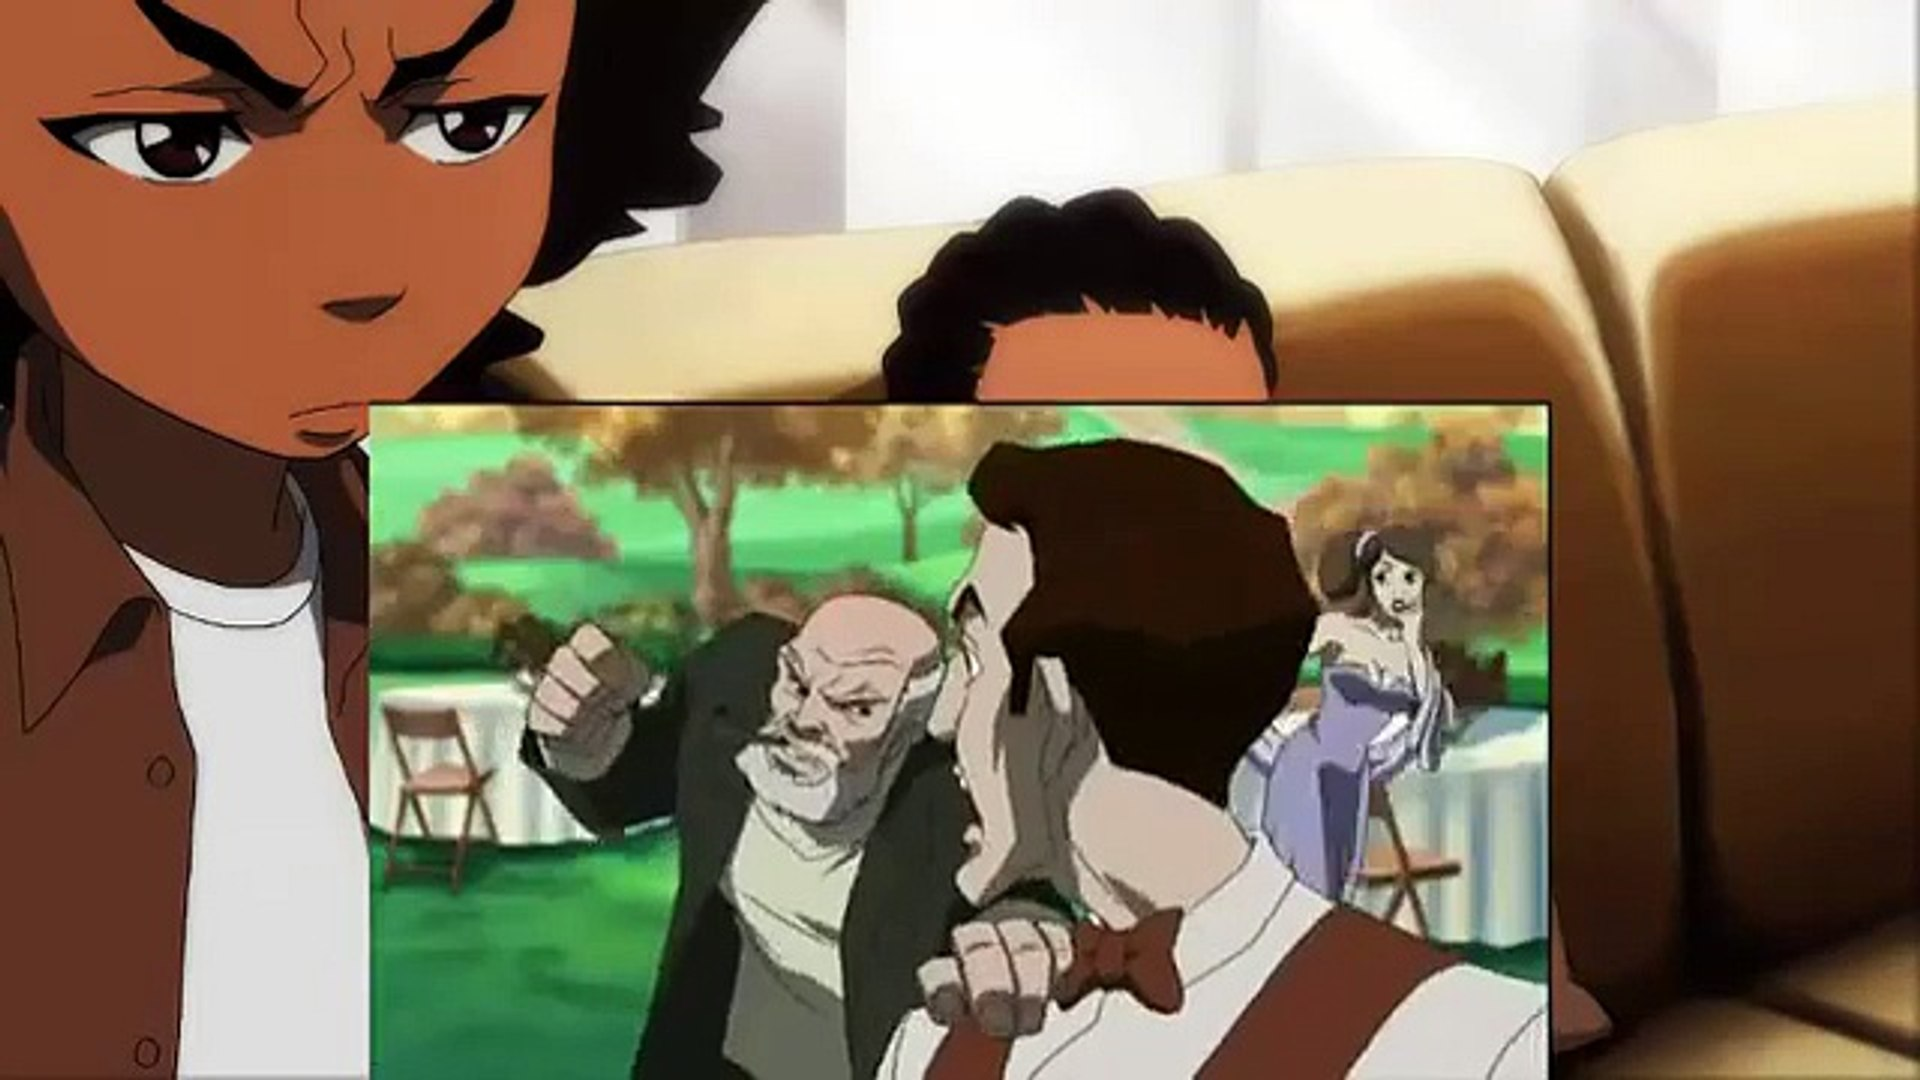 25+ Watch The Boondocks Season 1 Online Free Images